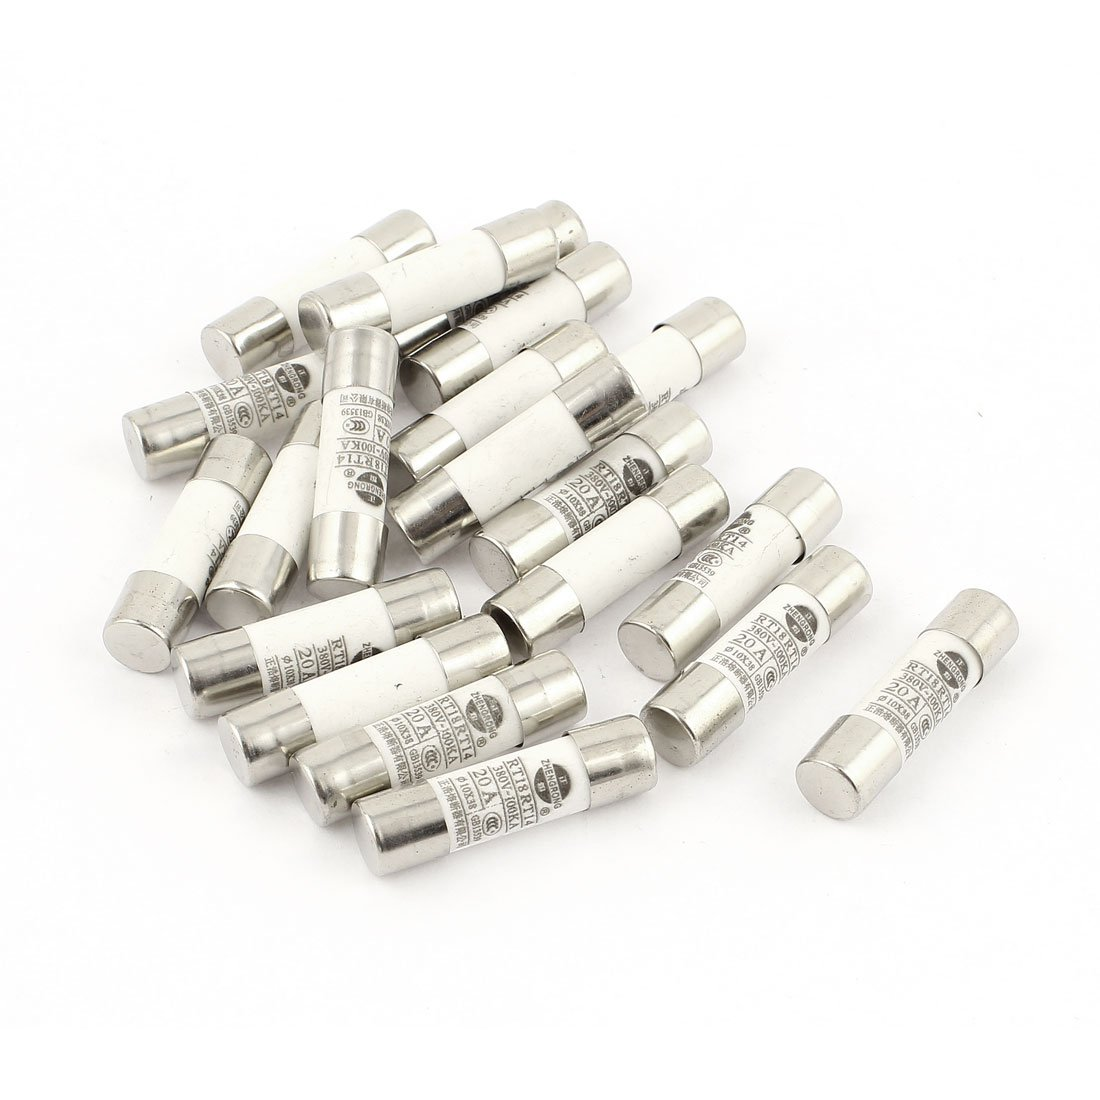 uxcell 20 Pcs RO15 RT18 RT14 Ceramic Cylindrical Tube Fuse 20A 380V 10x38mm SYNCTEA005630